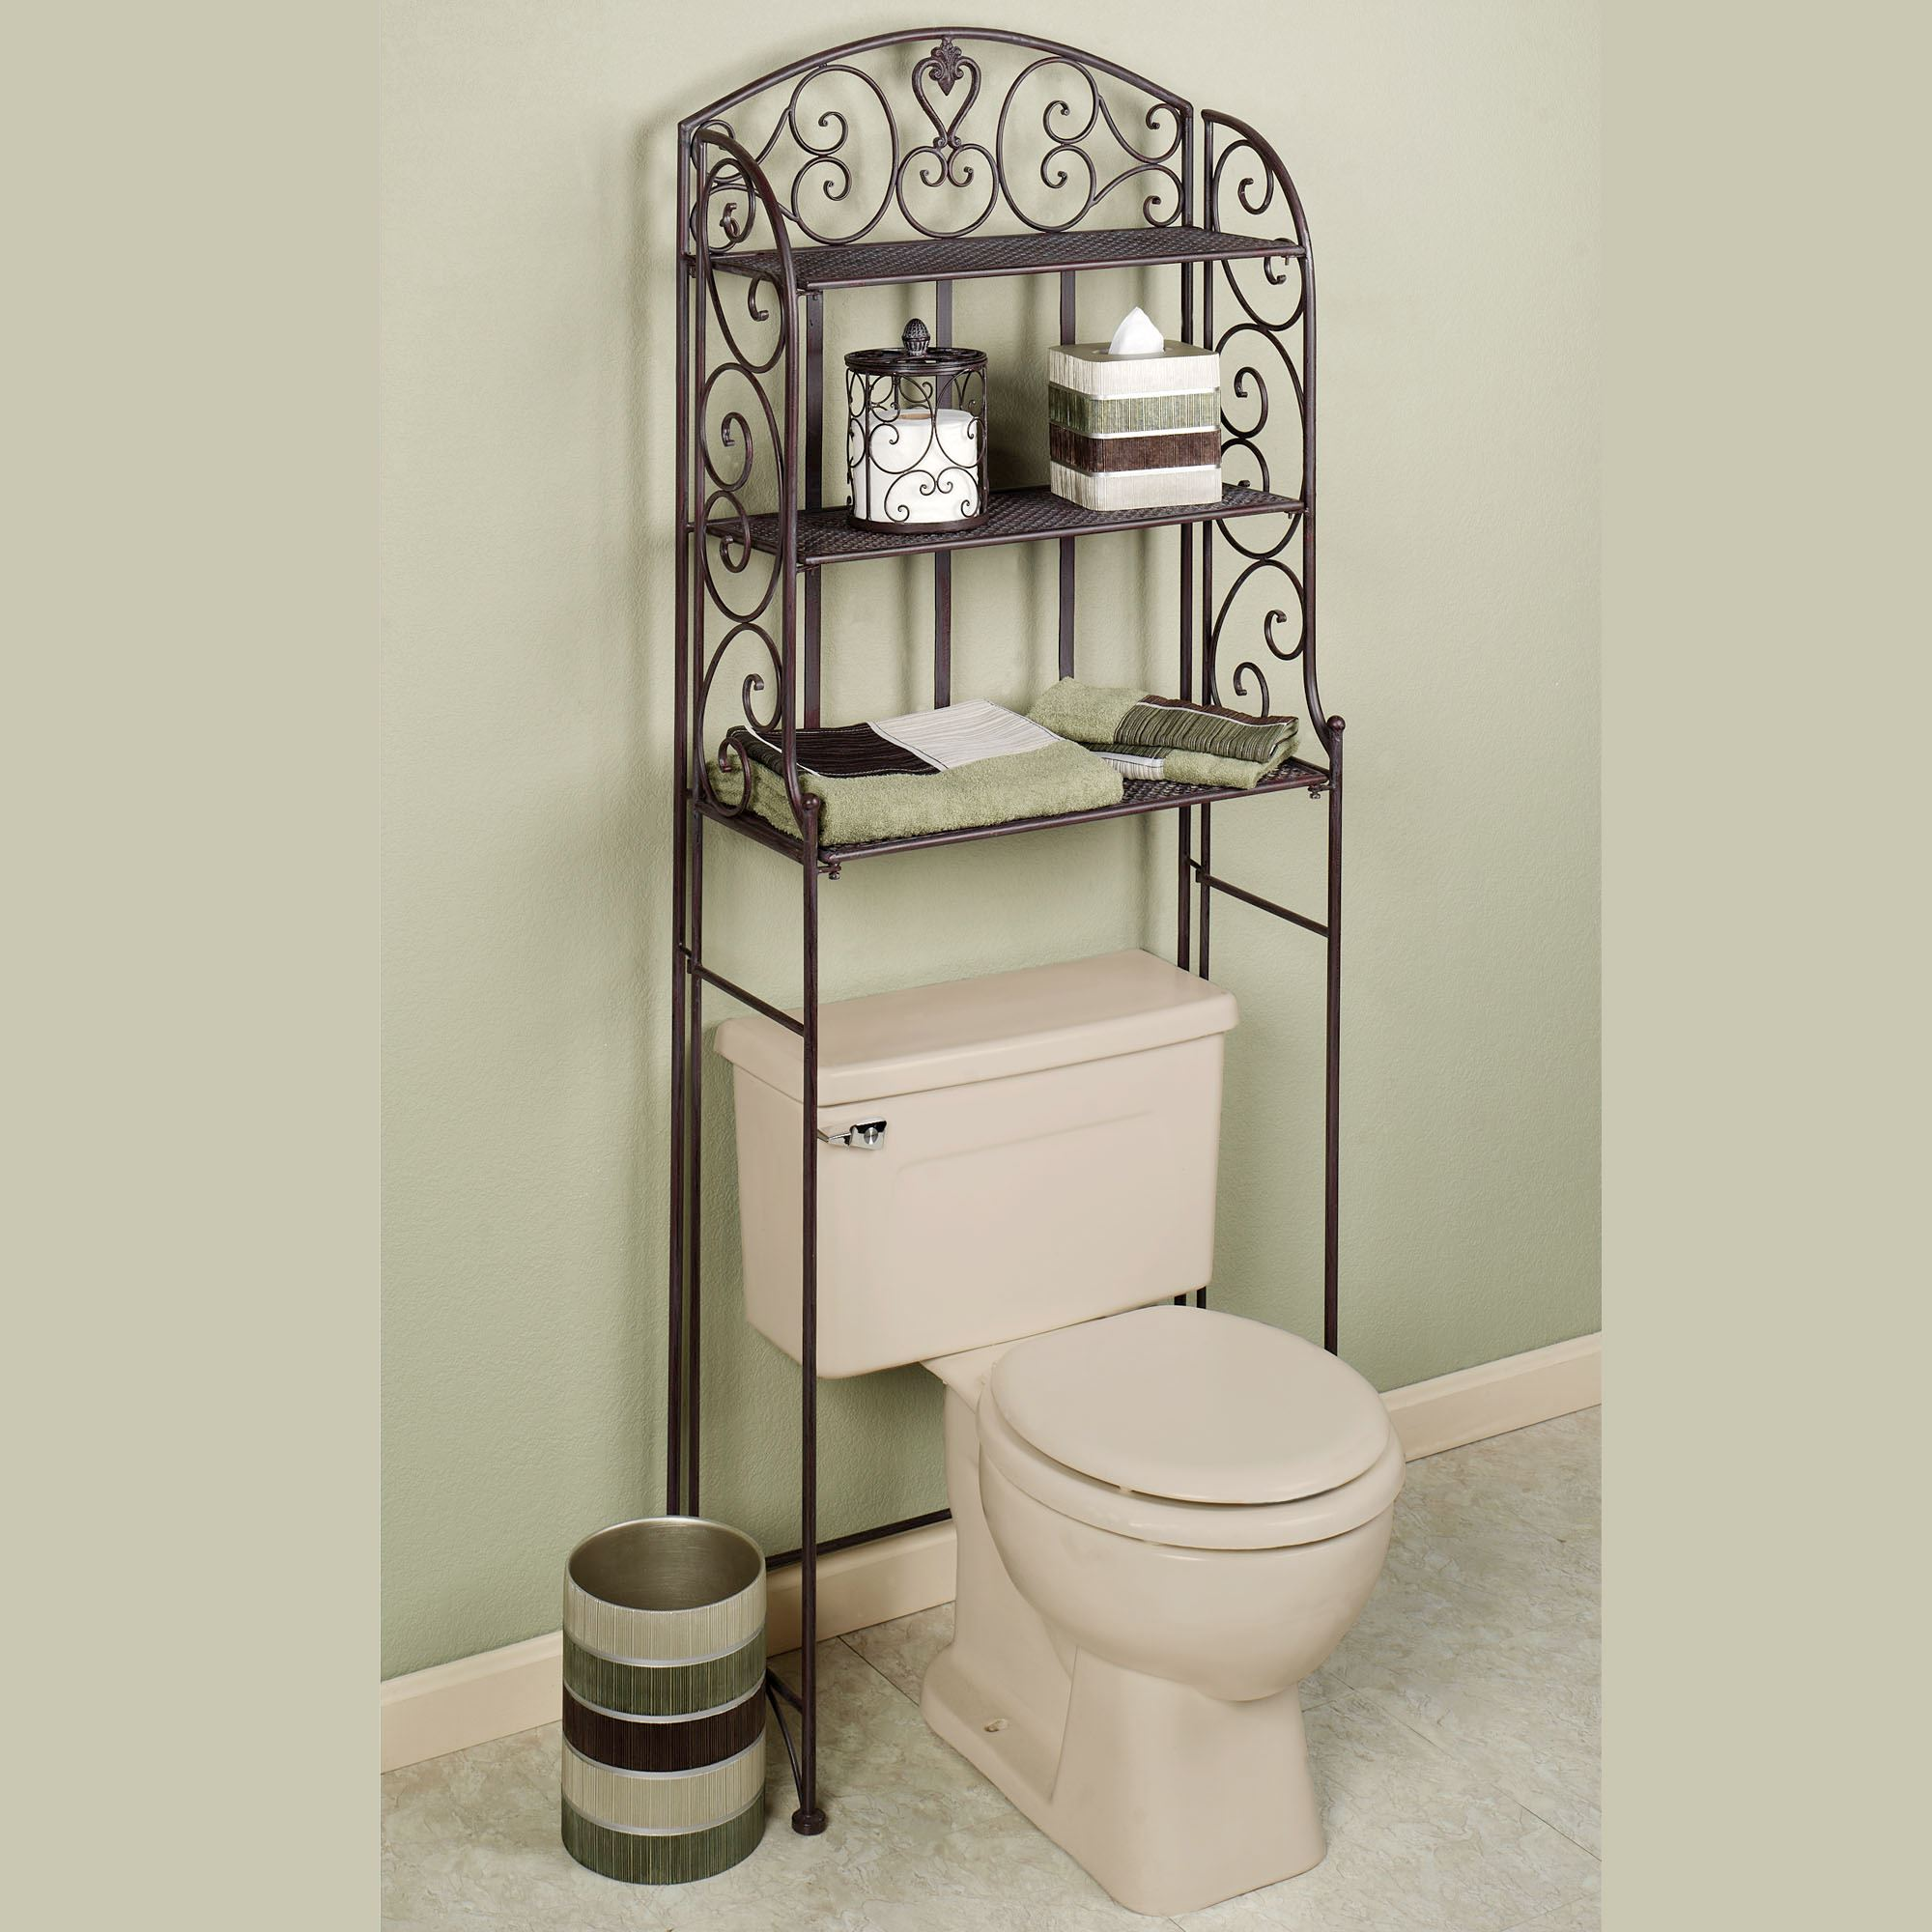 Charmant Aldabella Tuscan Slate Bathroom Space Saver